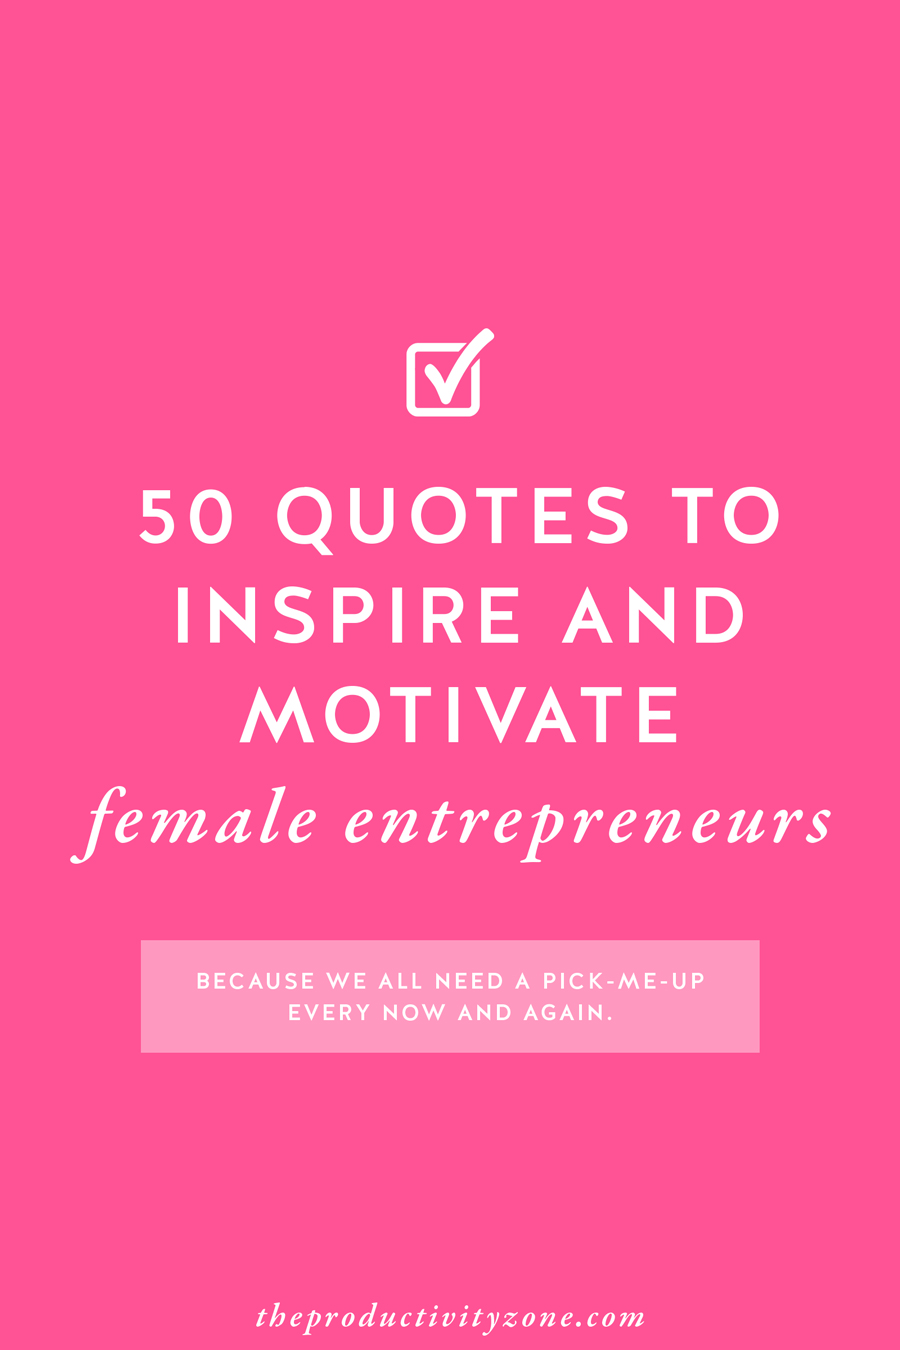 50 quotes to inspire and motivate female entrepreneurs (because sometimes we all need a kick in the pants or pick-me-up on this journey of entrepreneurship) on The Productivity Zone!!